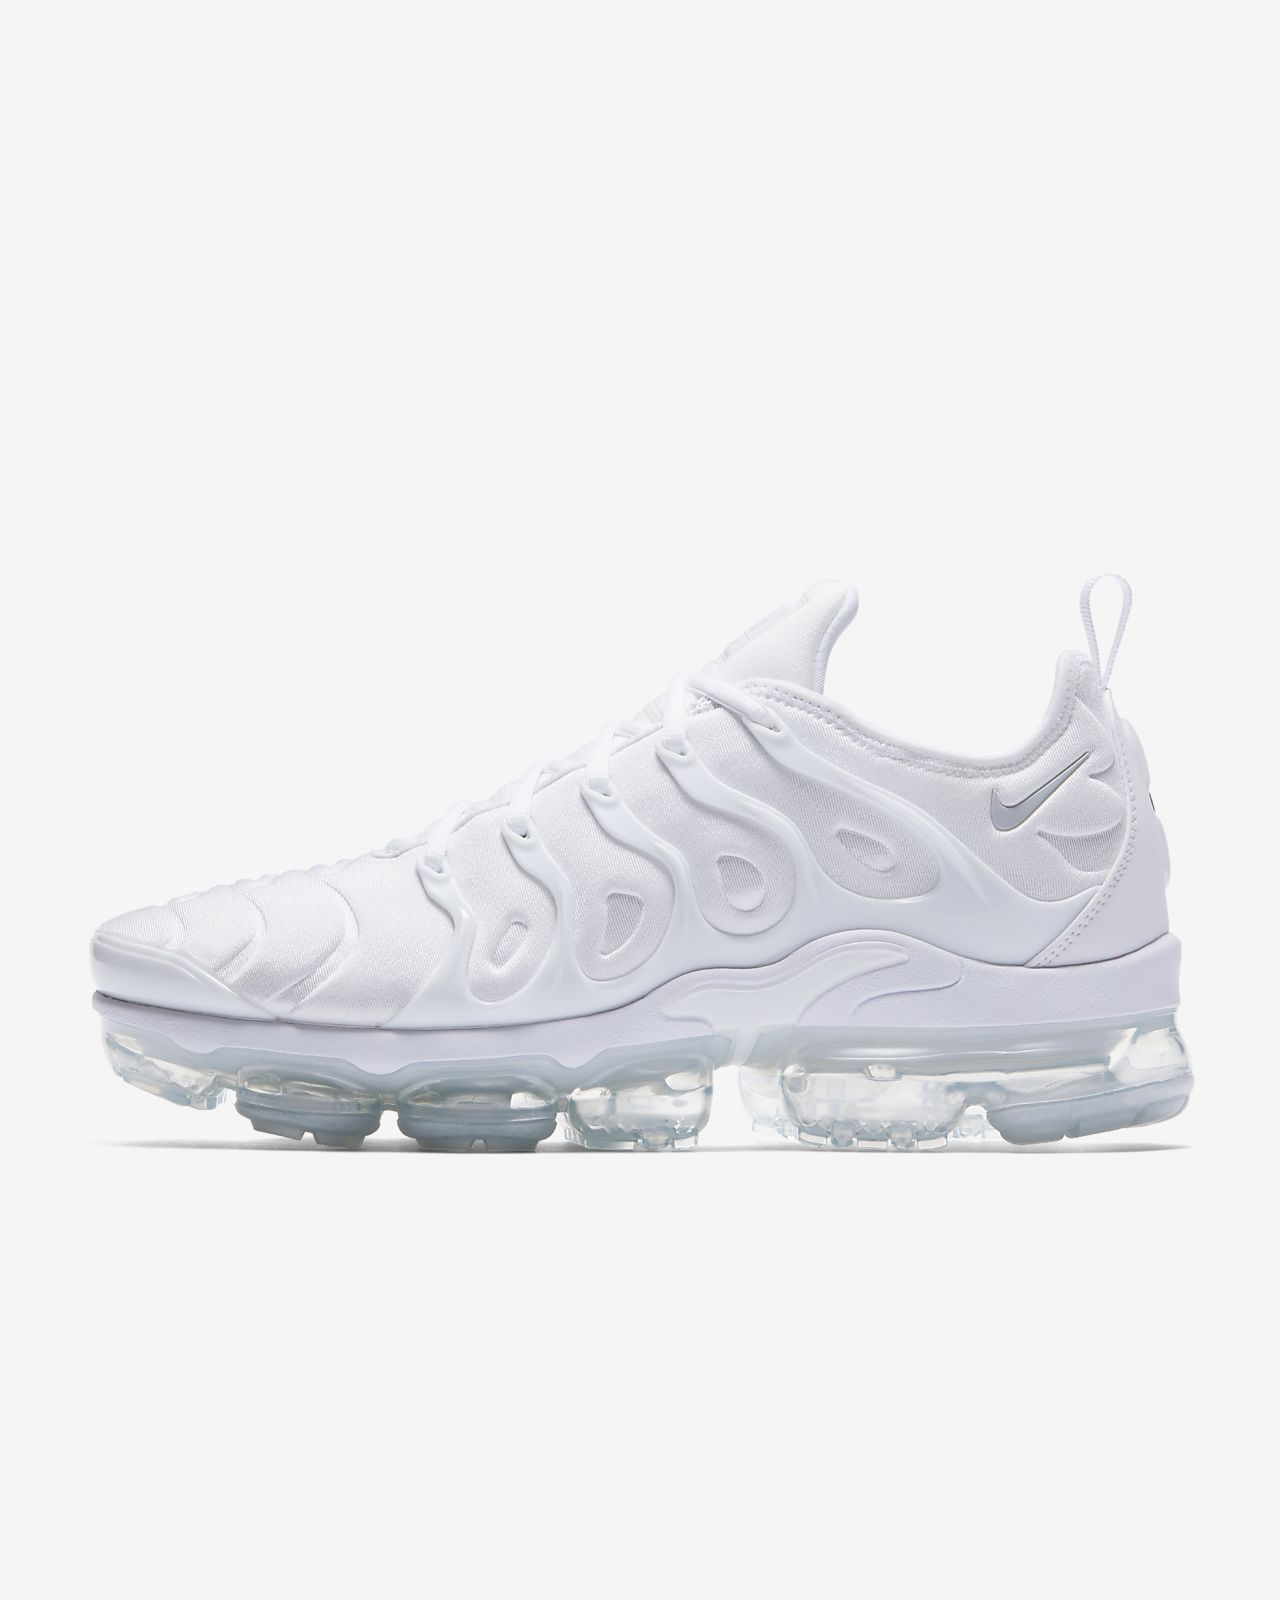 87829292161e2 Nike Air VaporMax Plus Men s Shoe. Nike.com NO